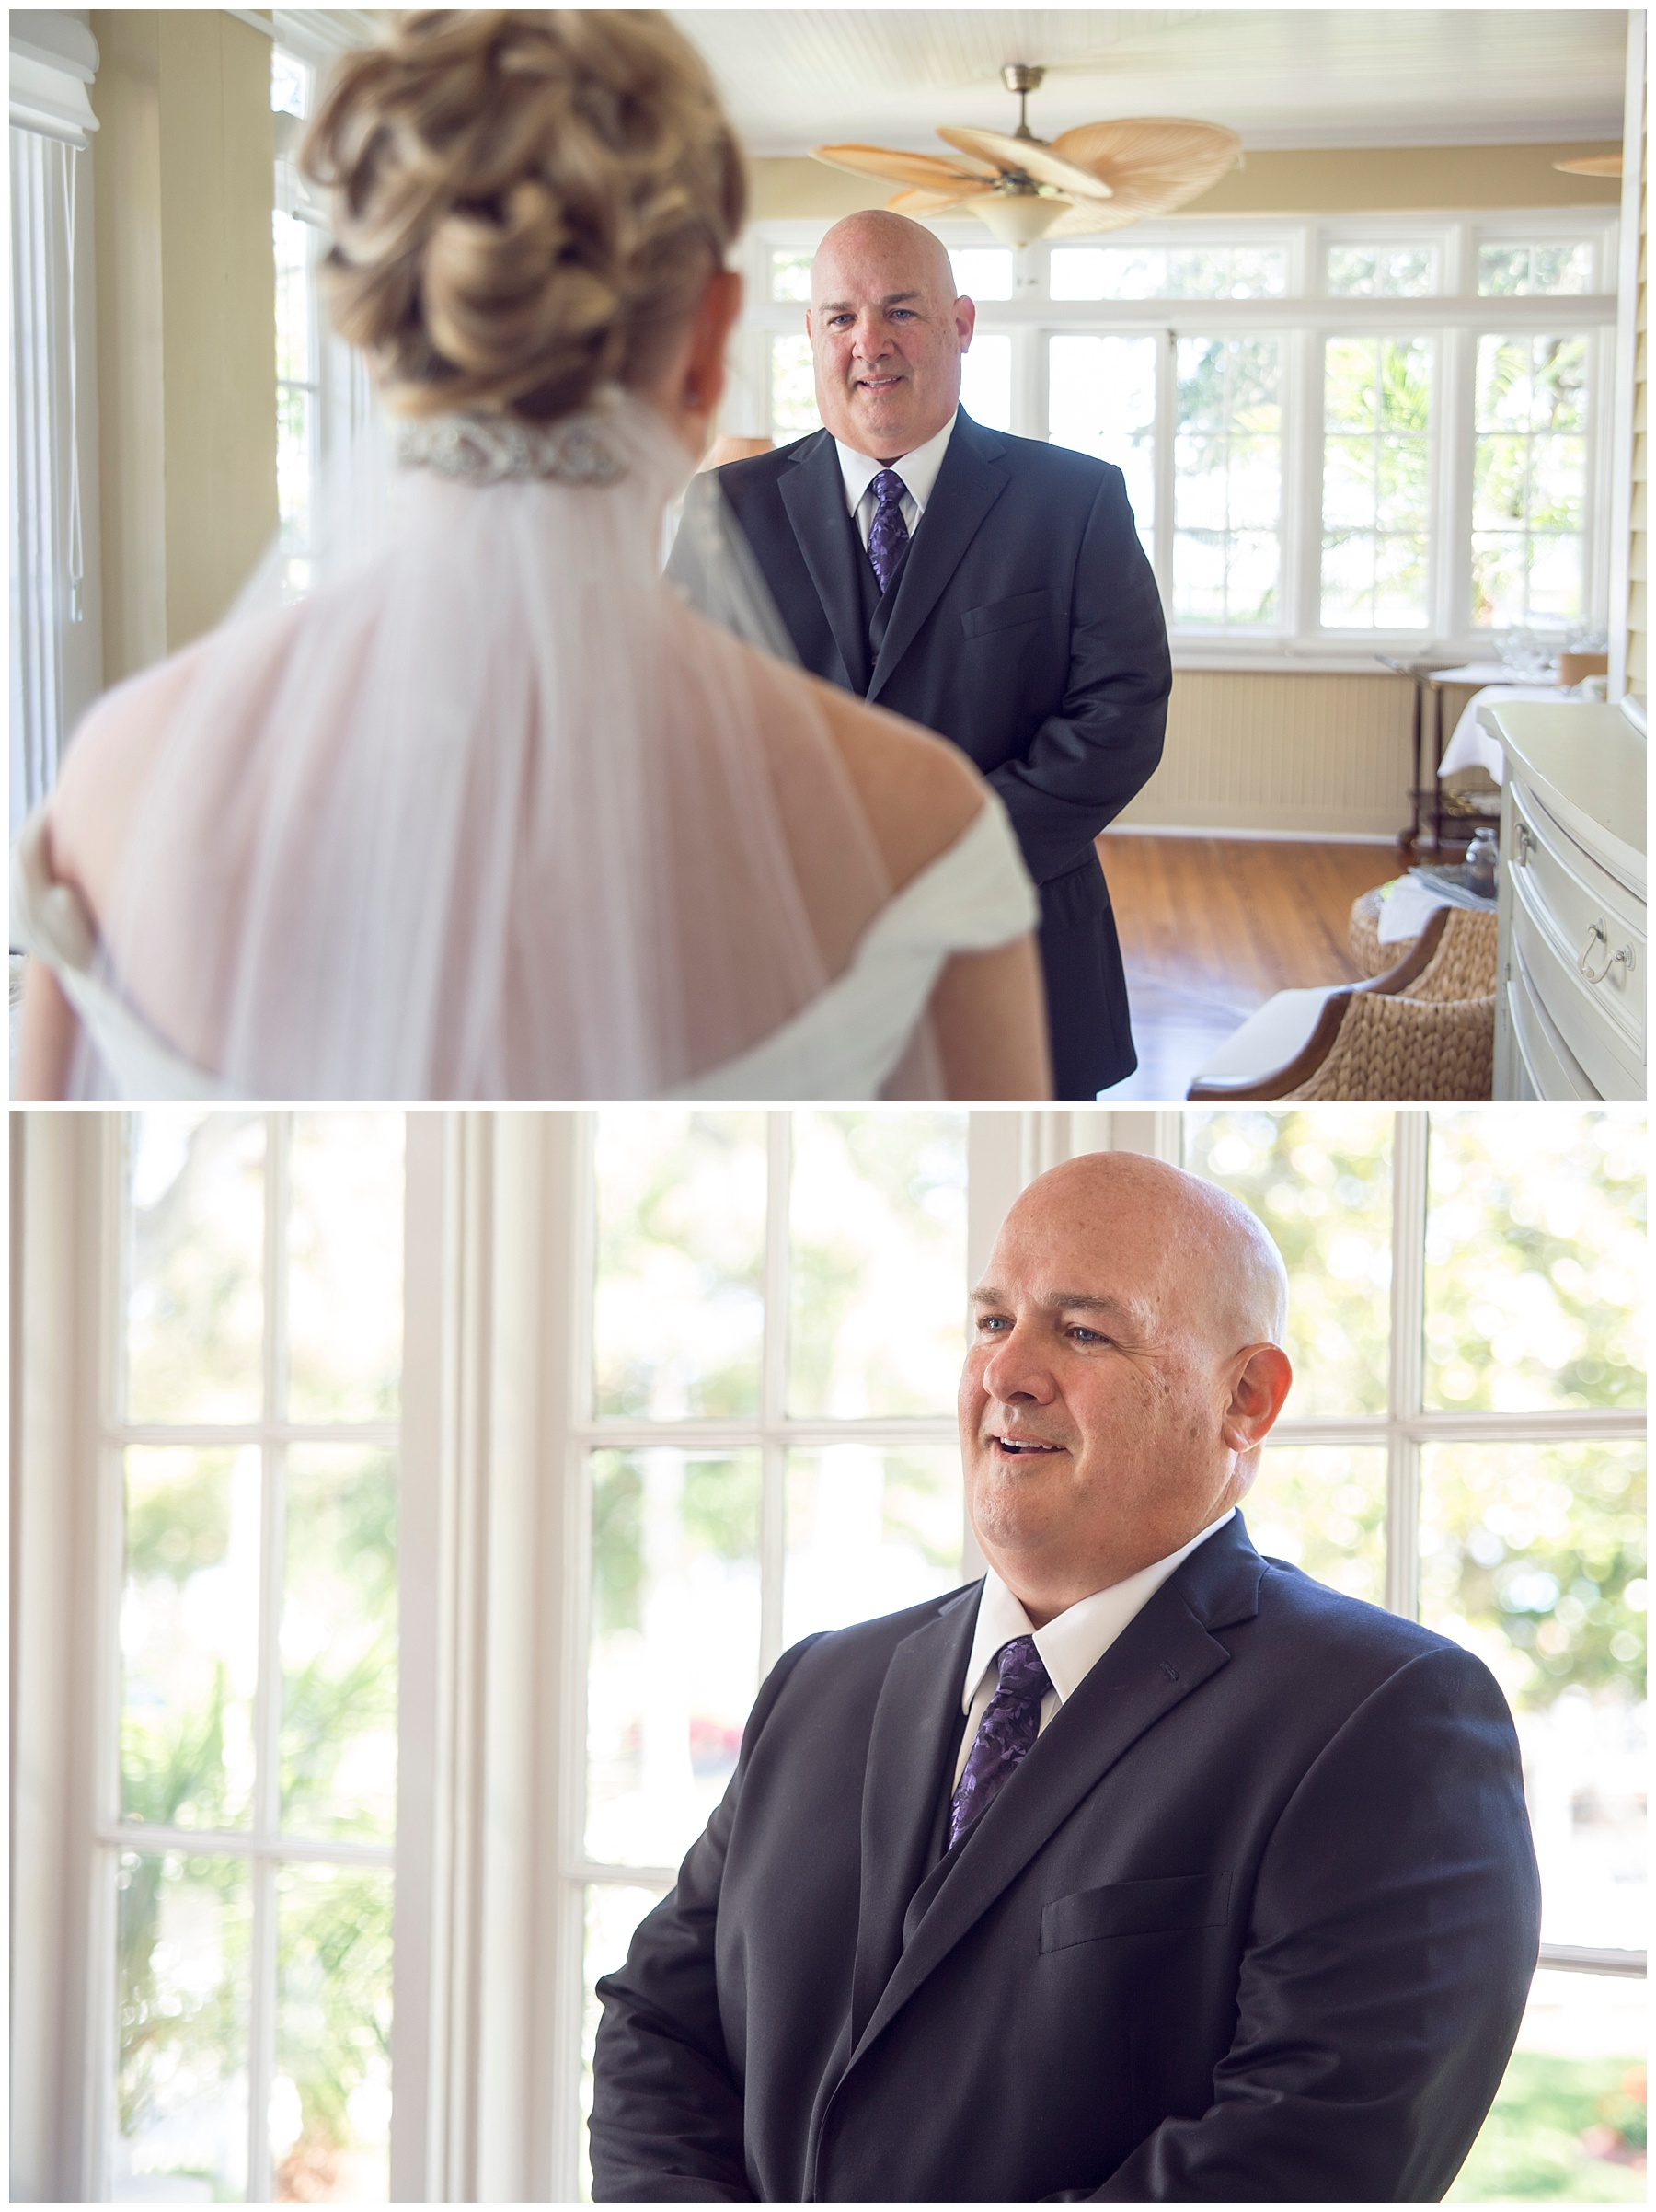 Tampa Bay wedding photographer